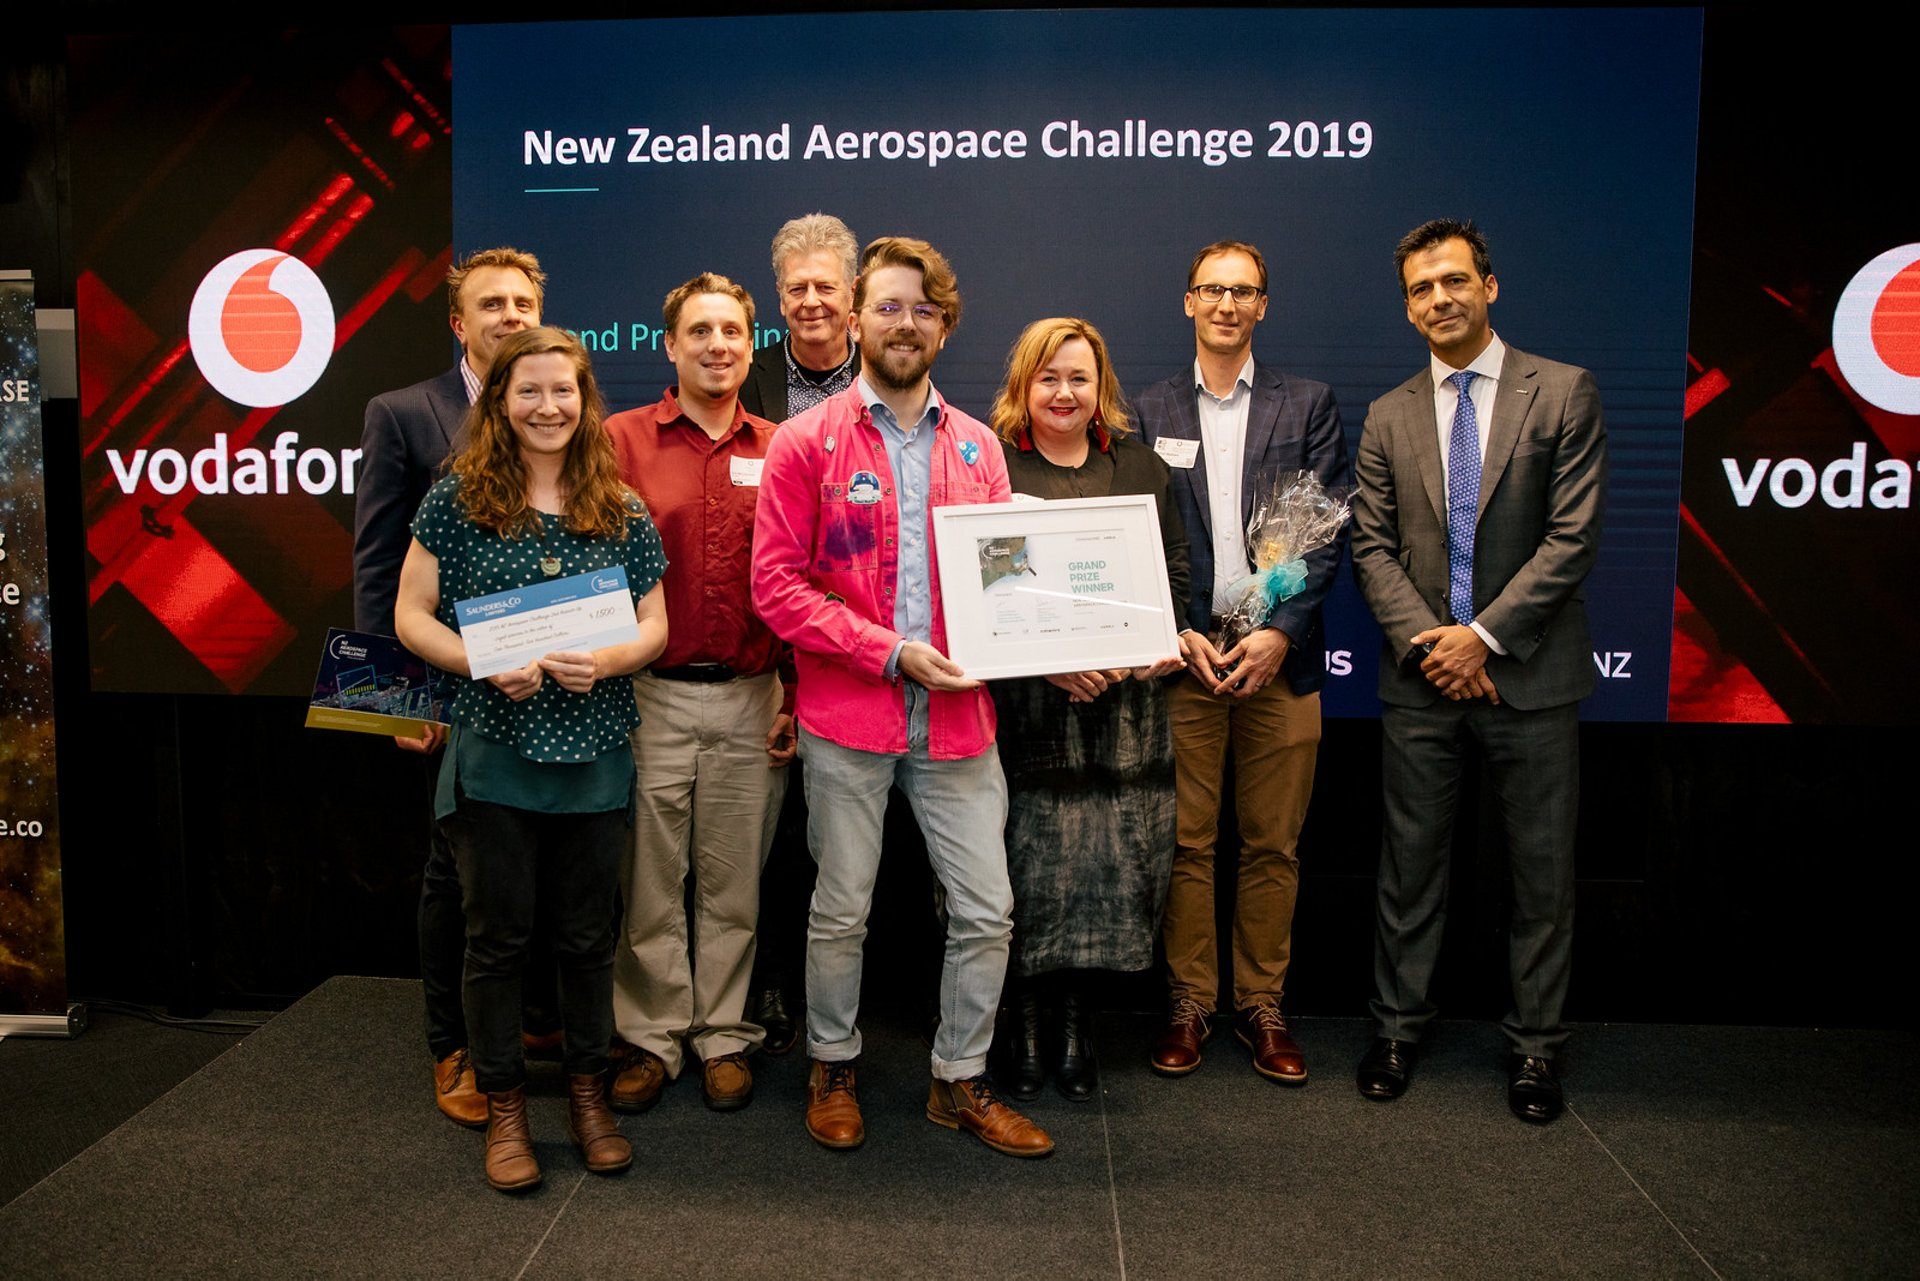 Seequent - winning team in the New Zealand Aerospace Challenge 2019. With the team are the Hon Dr Megan Woods, New Zealand Minister for Science, Research and Innovation and Valentin Merino, Head of Airbus Defence and Space Australasia